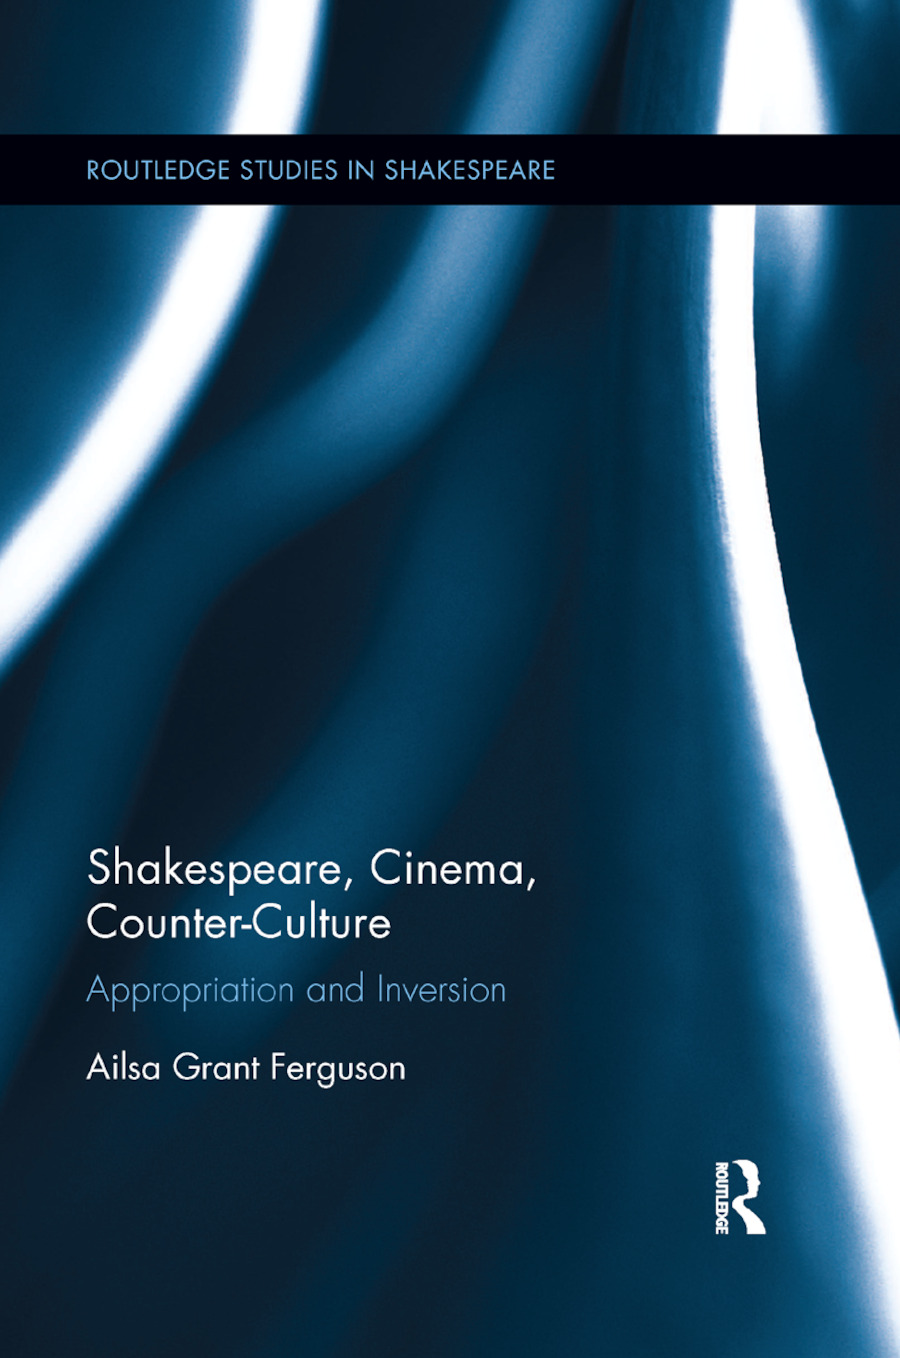 Shakespeare, Cinema, Counter-Culture: Appropriation and Inversion book cover